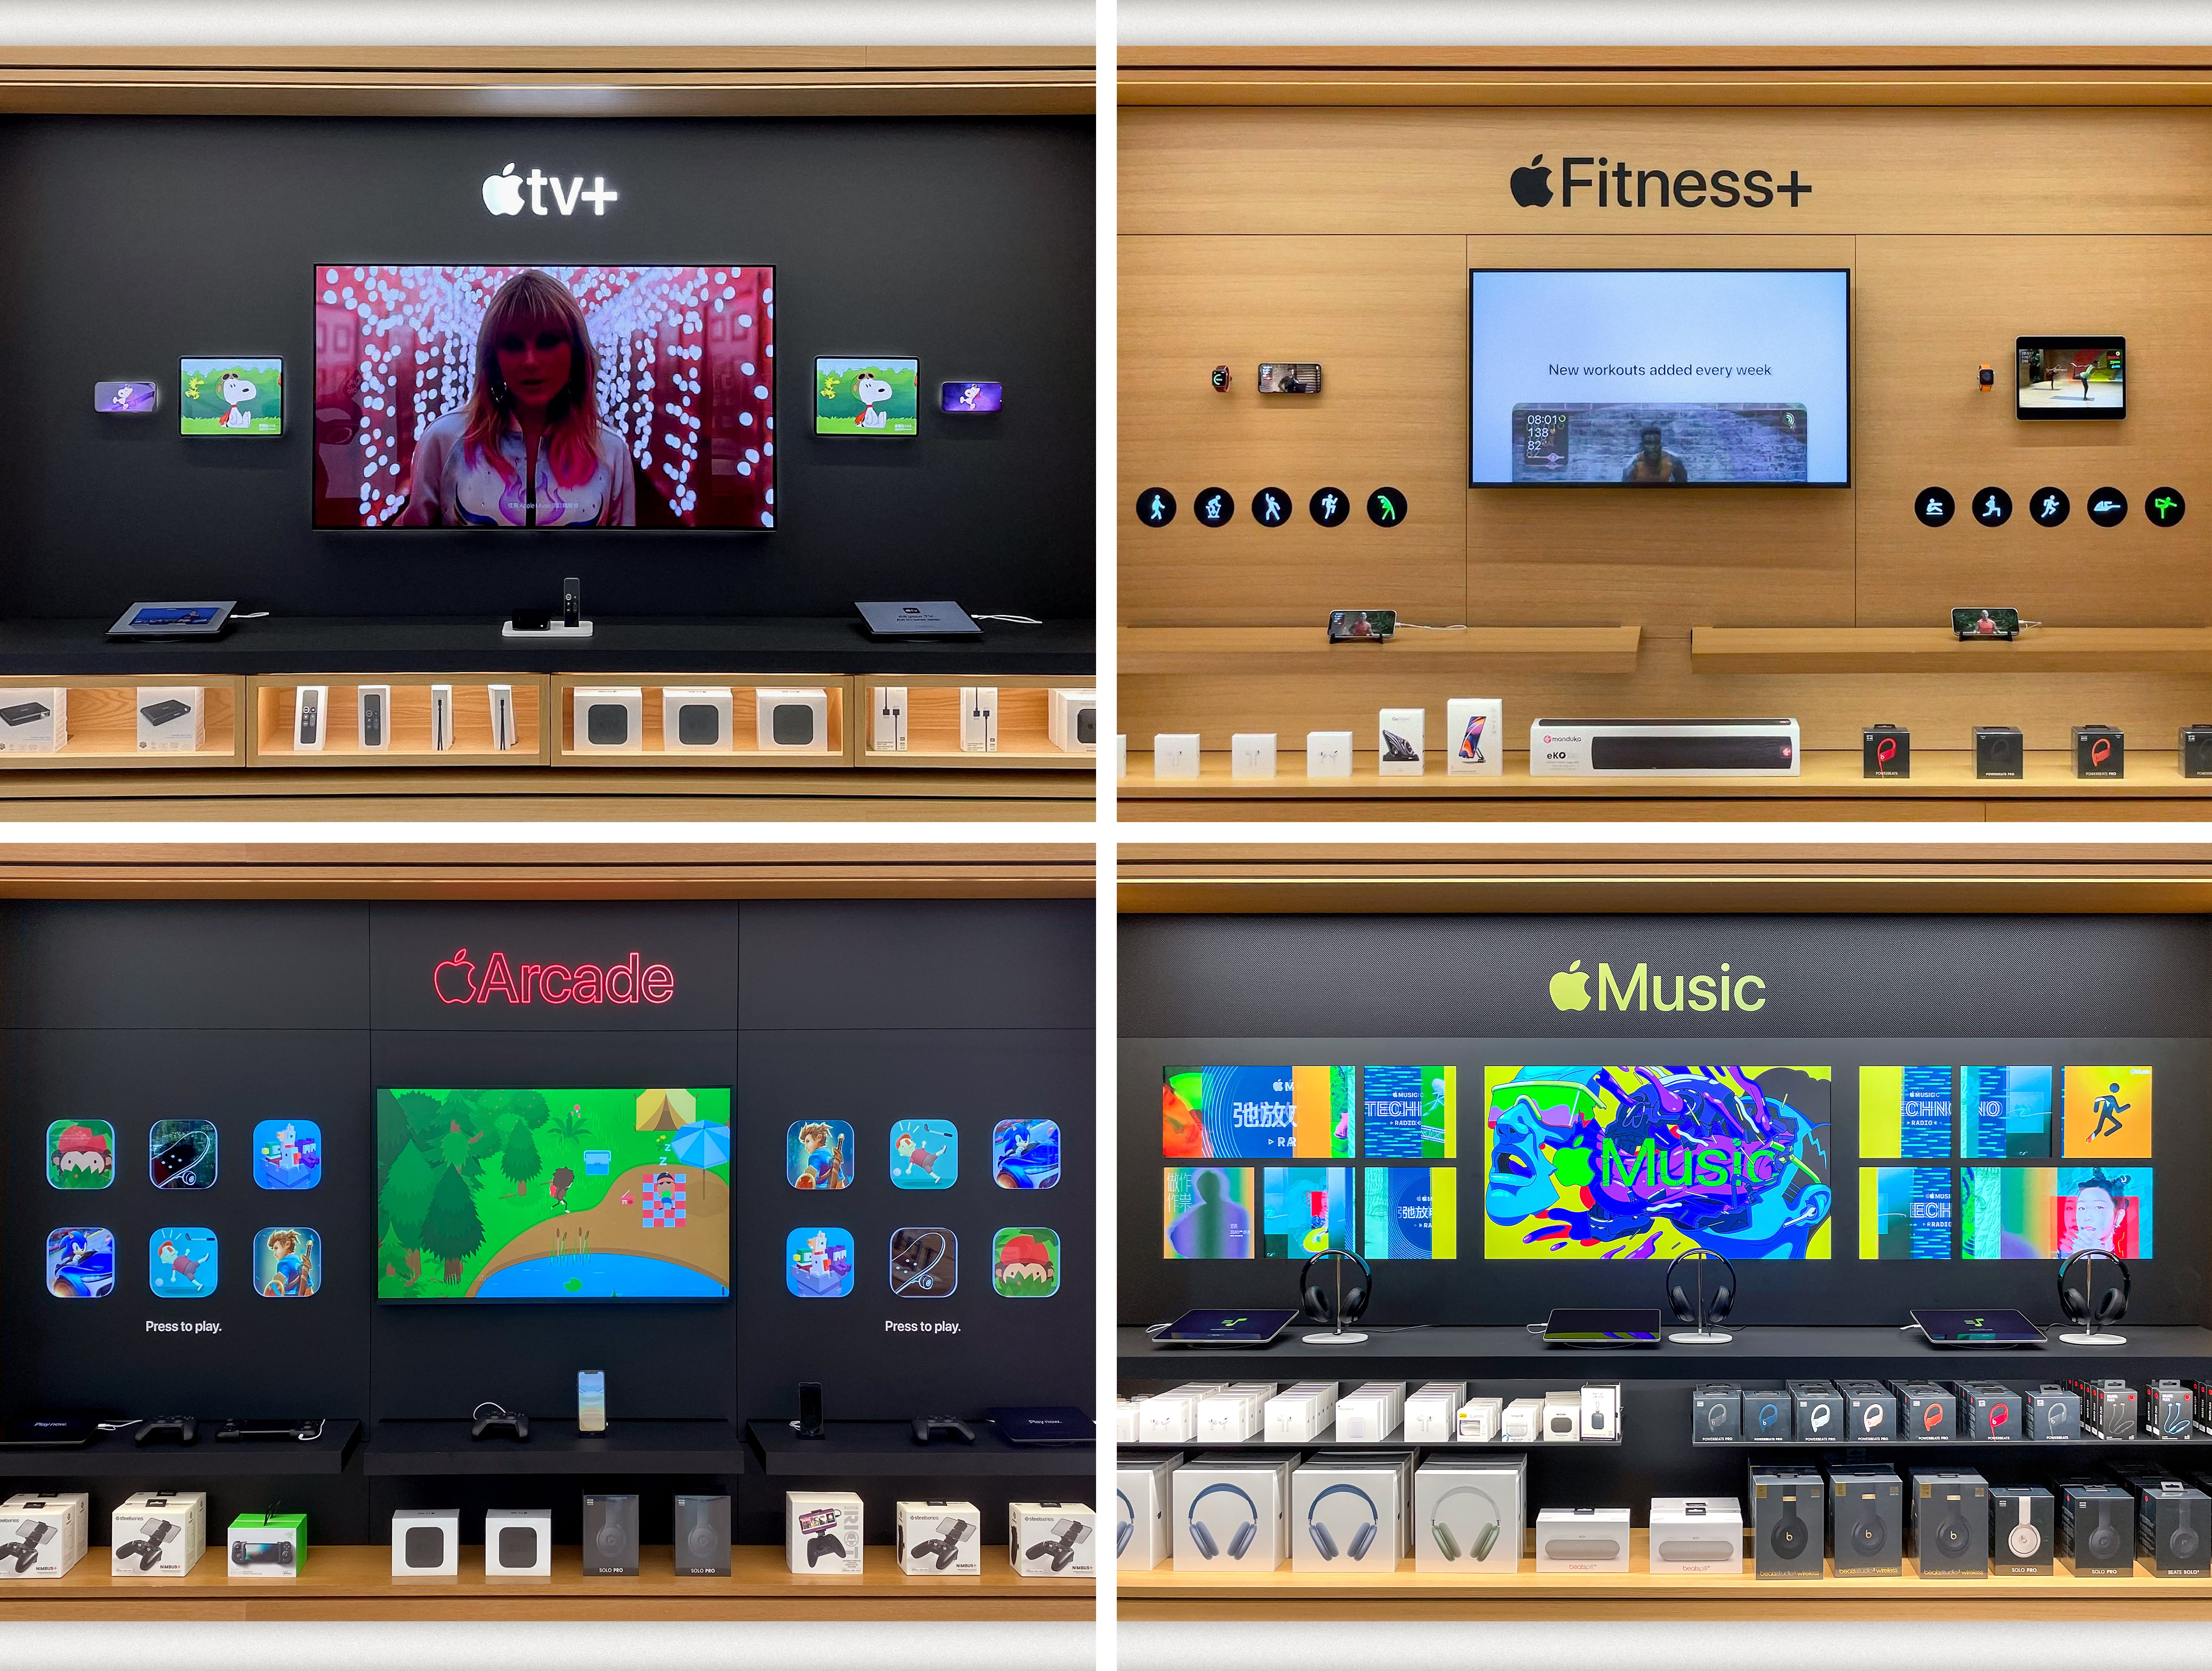 Apple TV+, Apple Fitness+, Apple Arcade, and Apple Music displays.